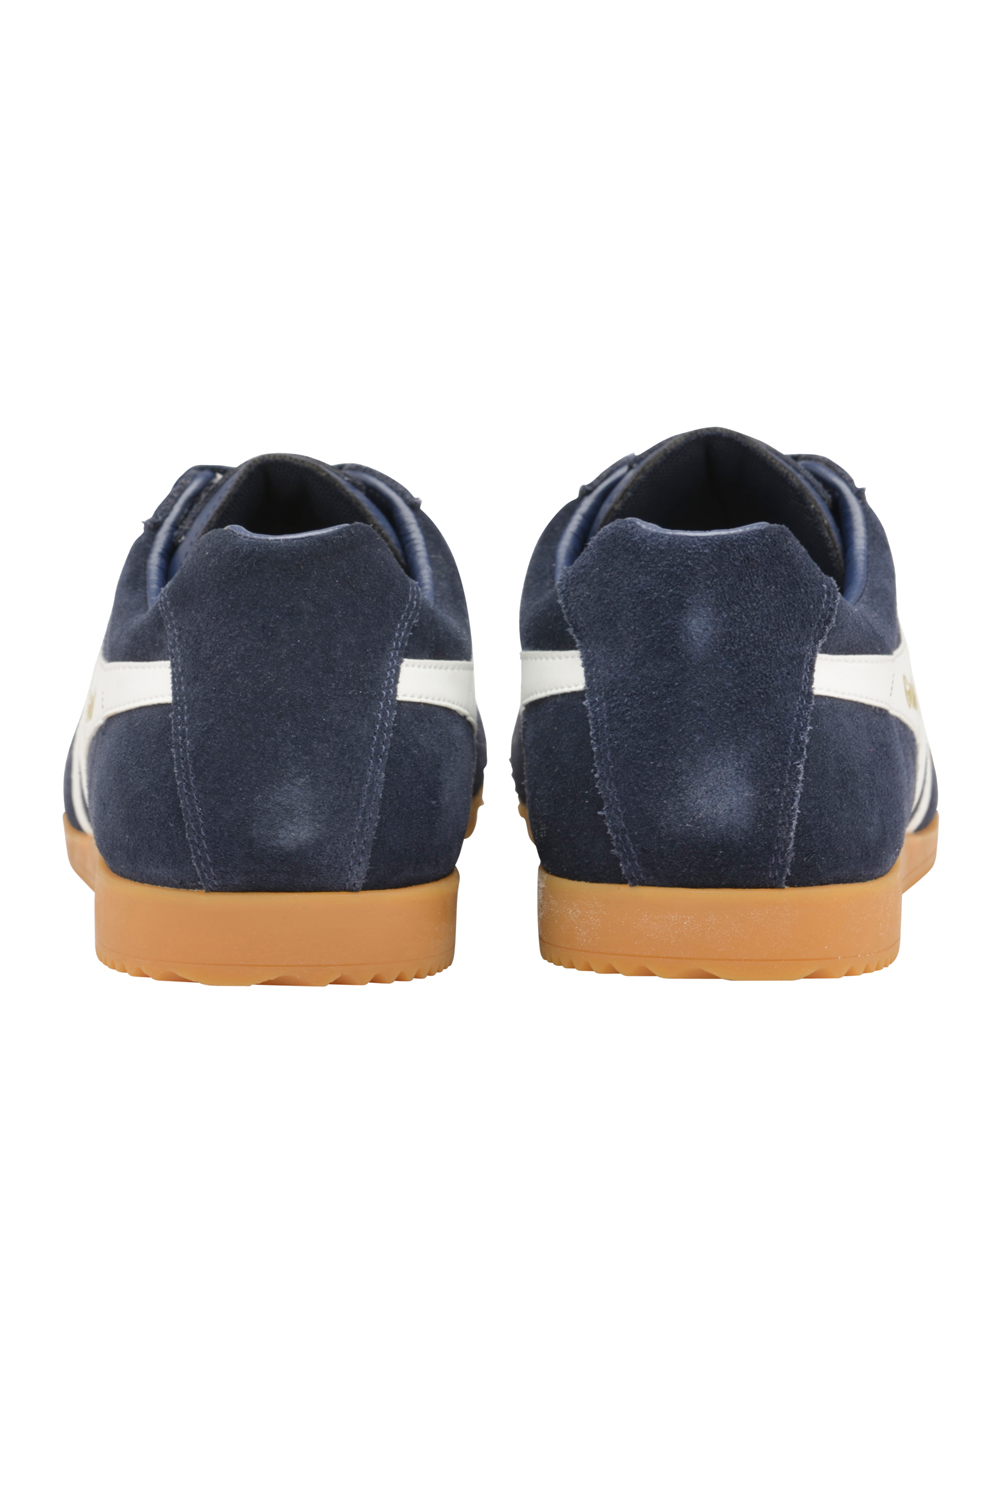 thumbnail 5 - Gola Harrier Suede Classic Vintage Lace-Up Sneakers Mens Trainers Low Top Shoes